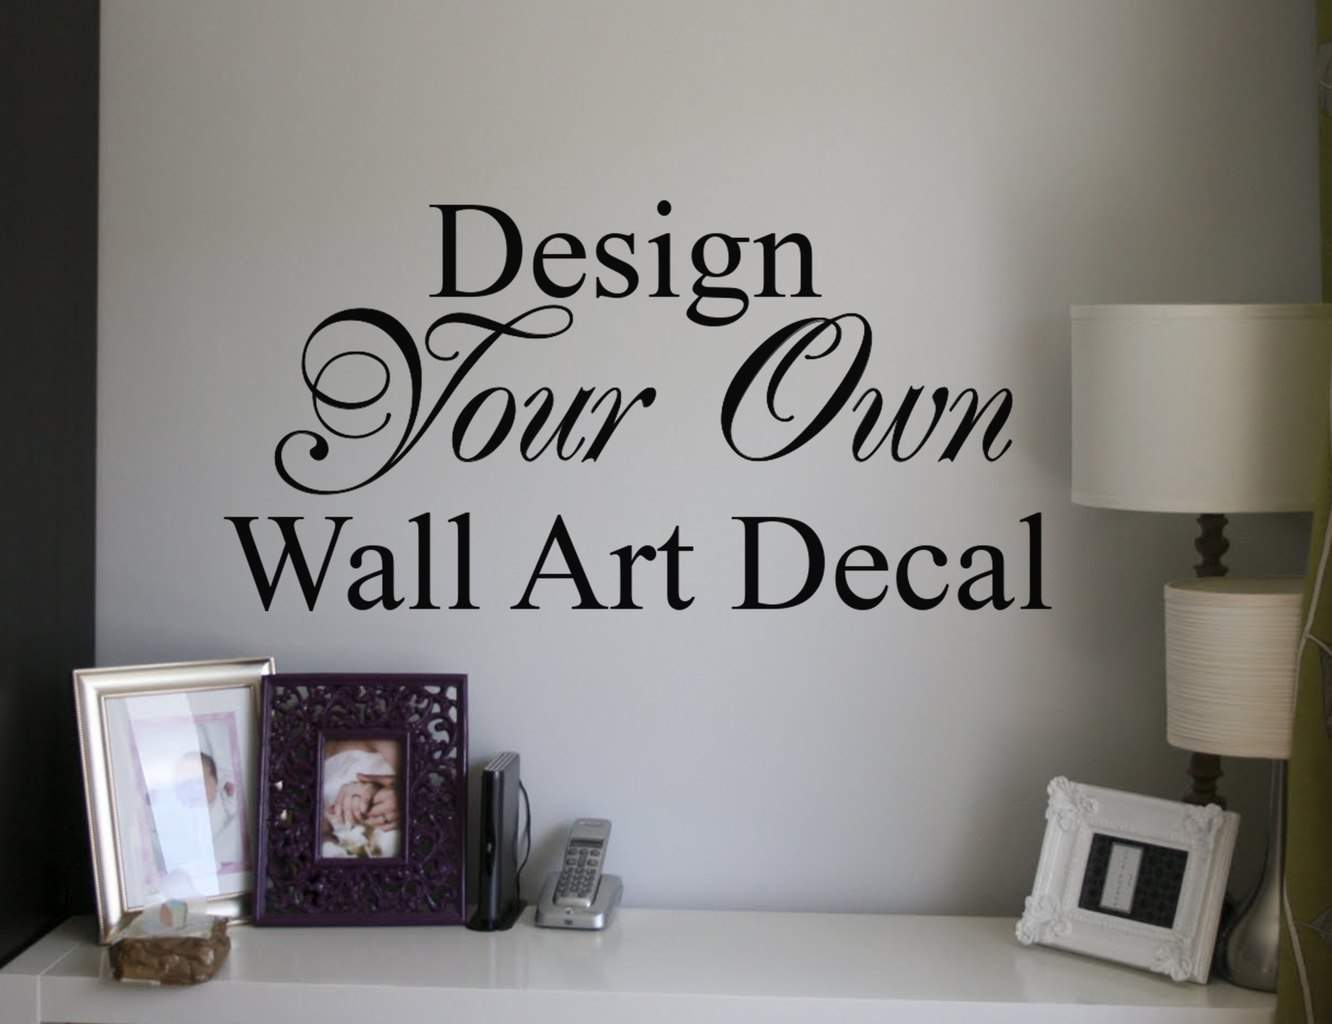 Custom wall decal Design your own decal tool